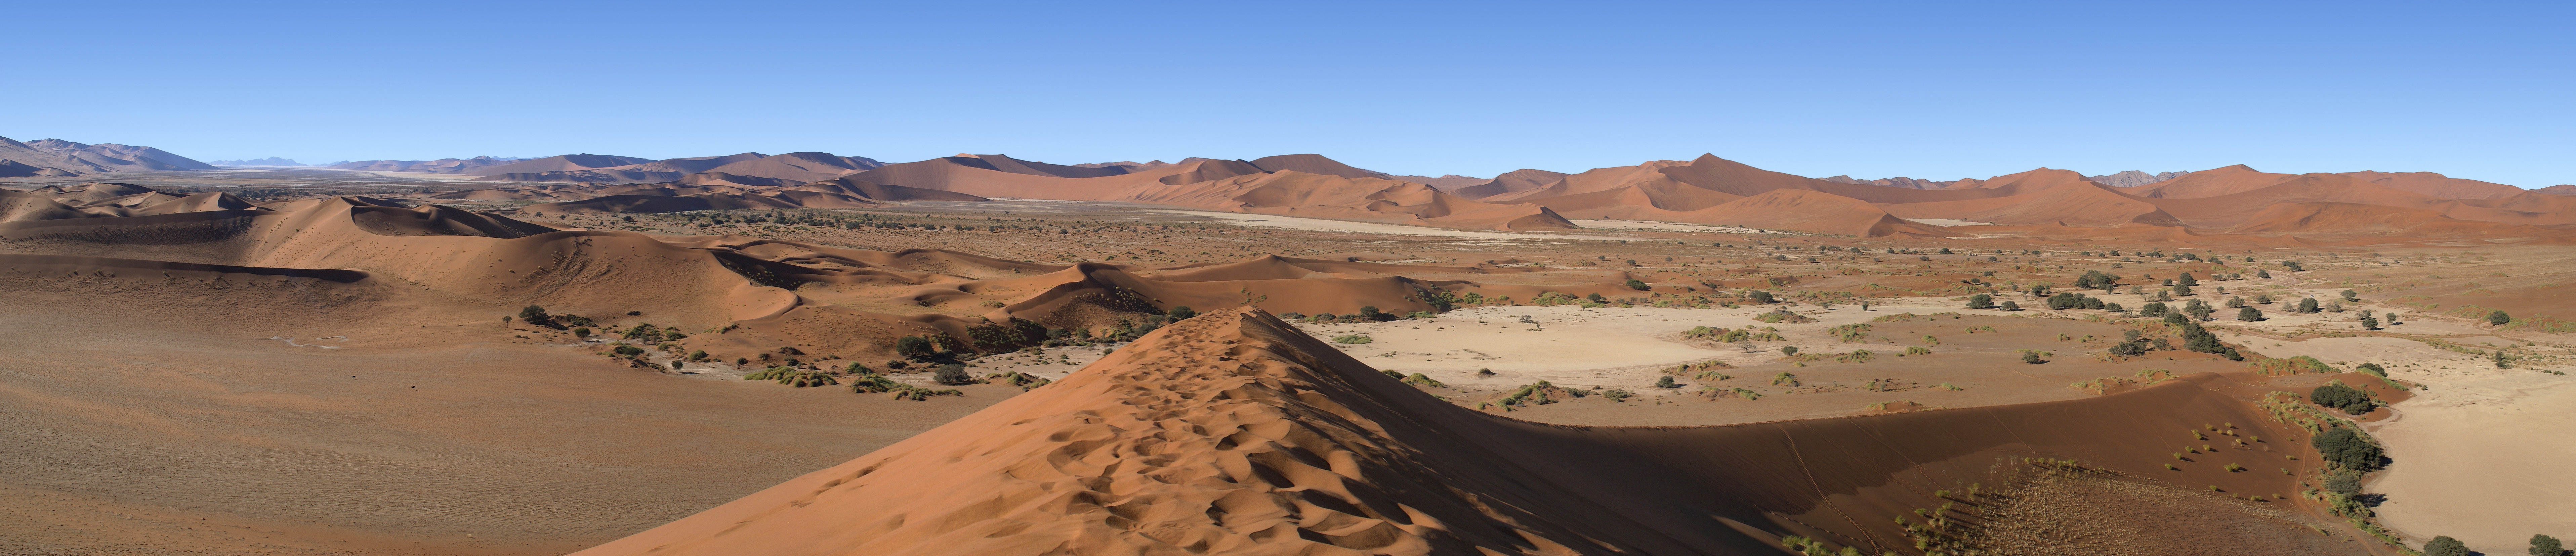 high sossusvlei south view HD Wallpaper